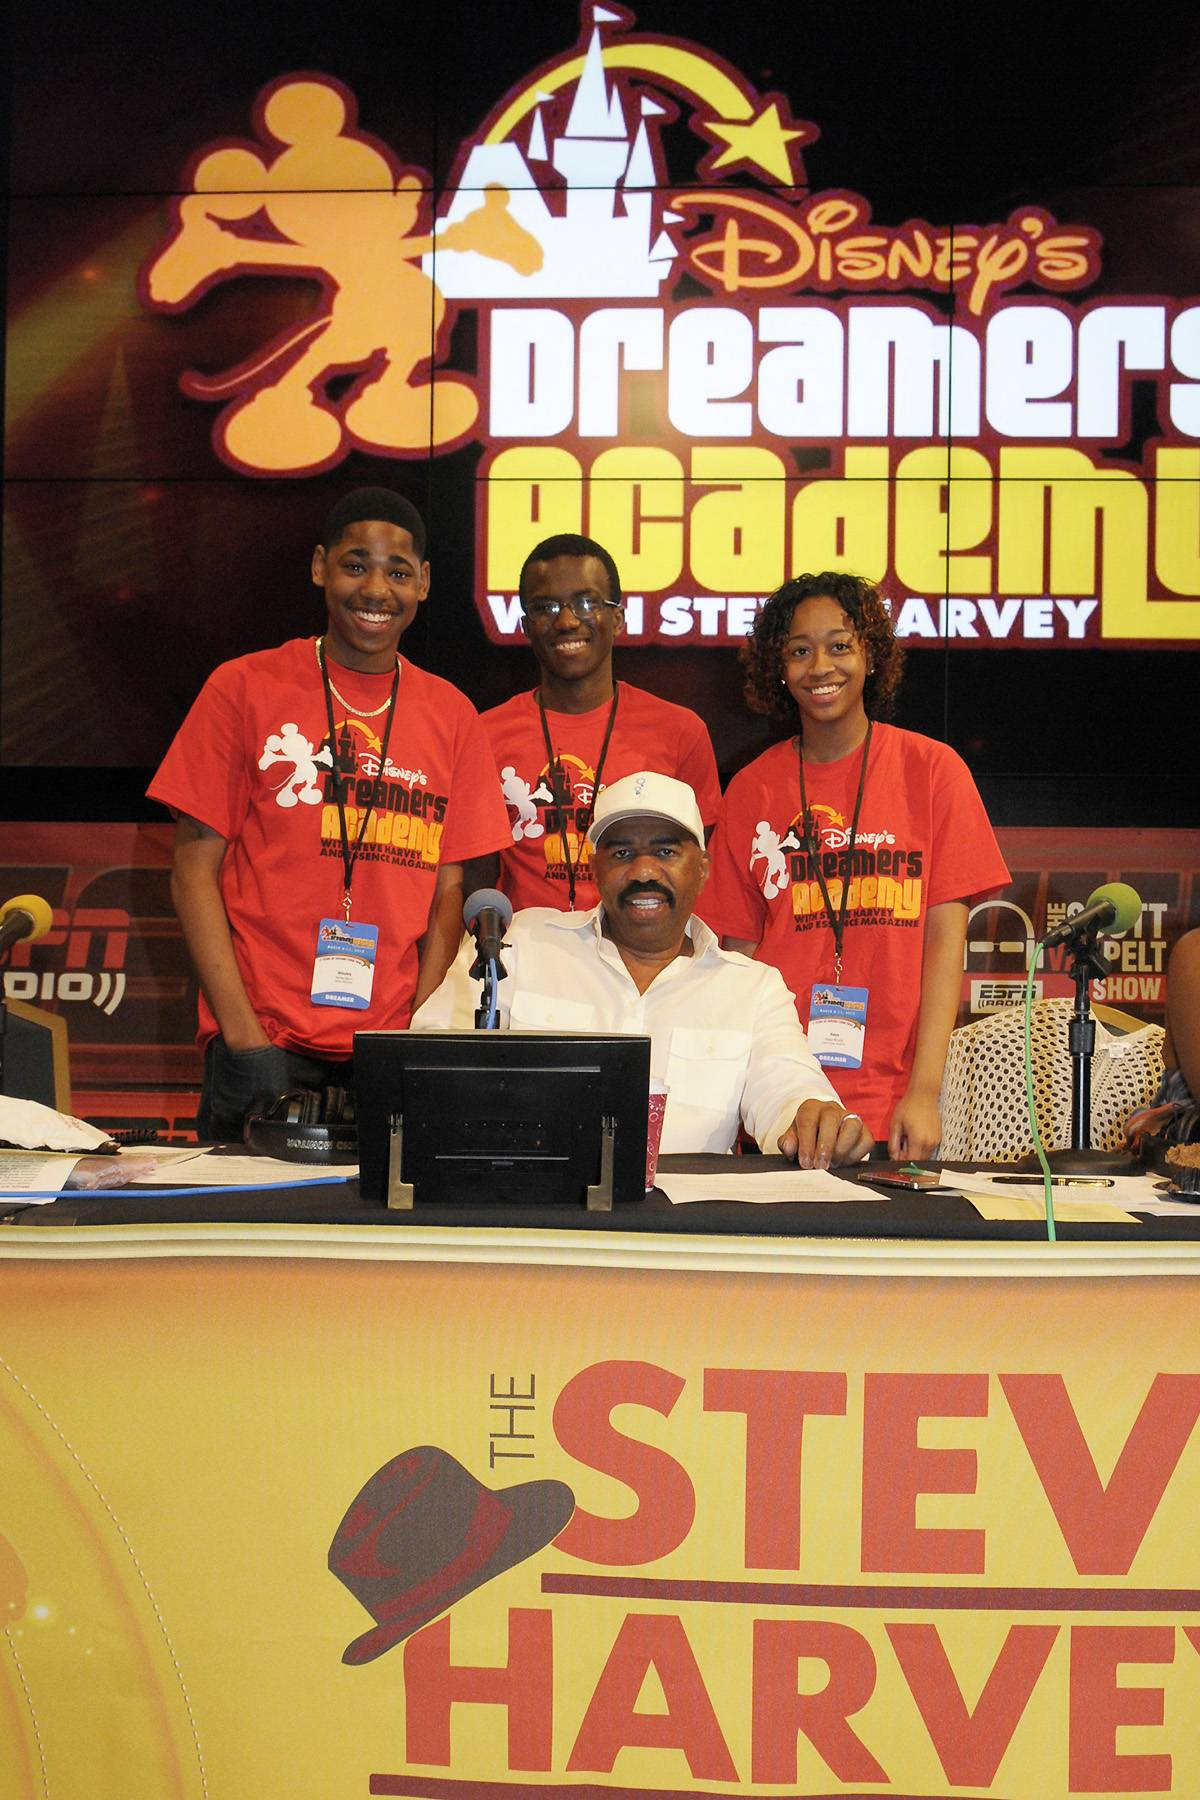 Early Risers - Steve Harvey invited a group of Dreamers to join him in an early morning taping of his radio program, which broadcasted live from ESPN?S Wide World of Sports in Orlando on March 9.  (Photo: Phelan Ebenhack)